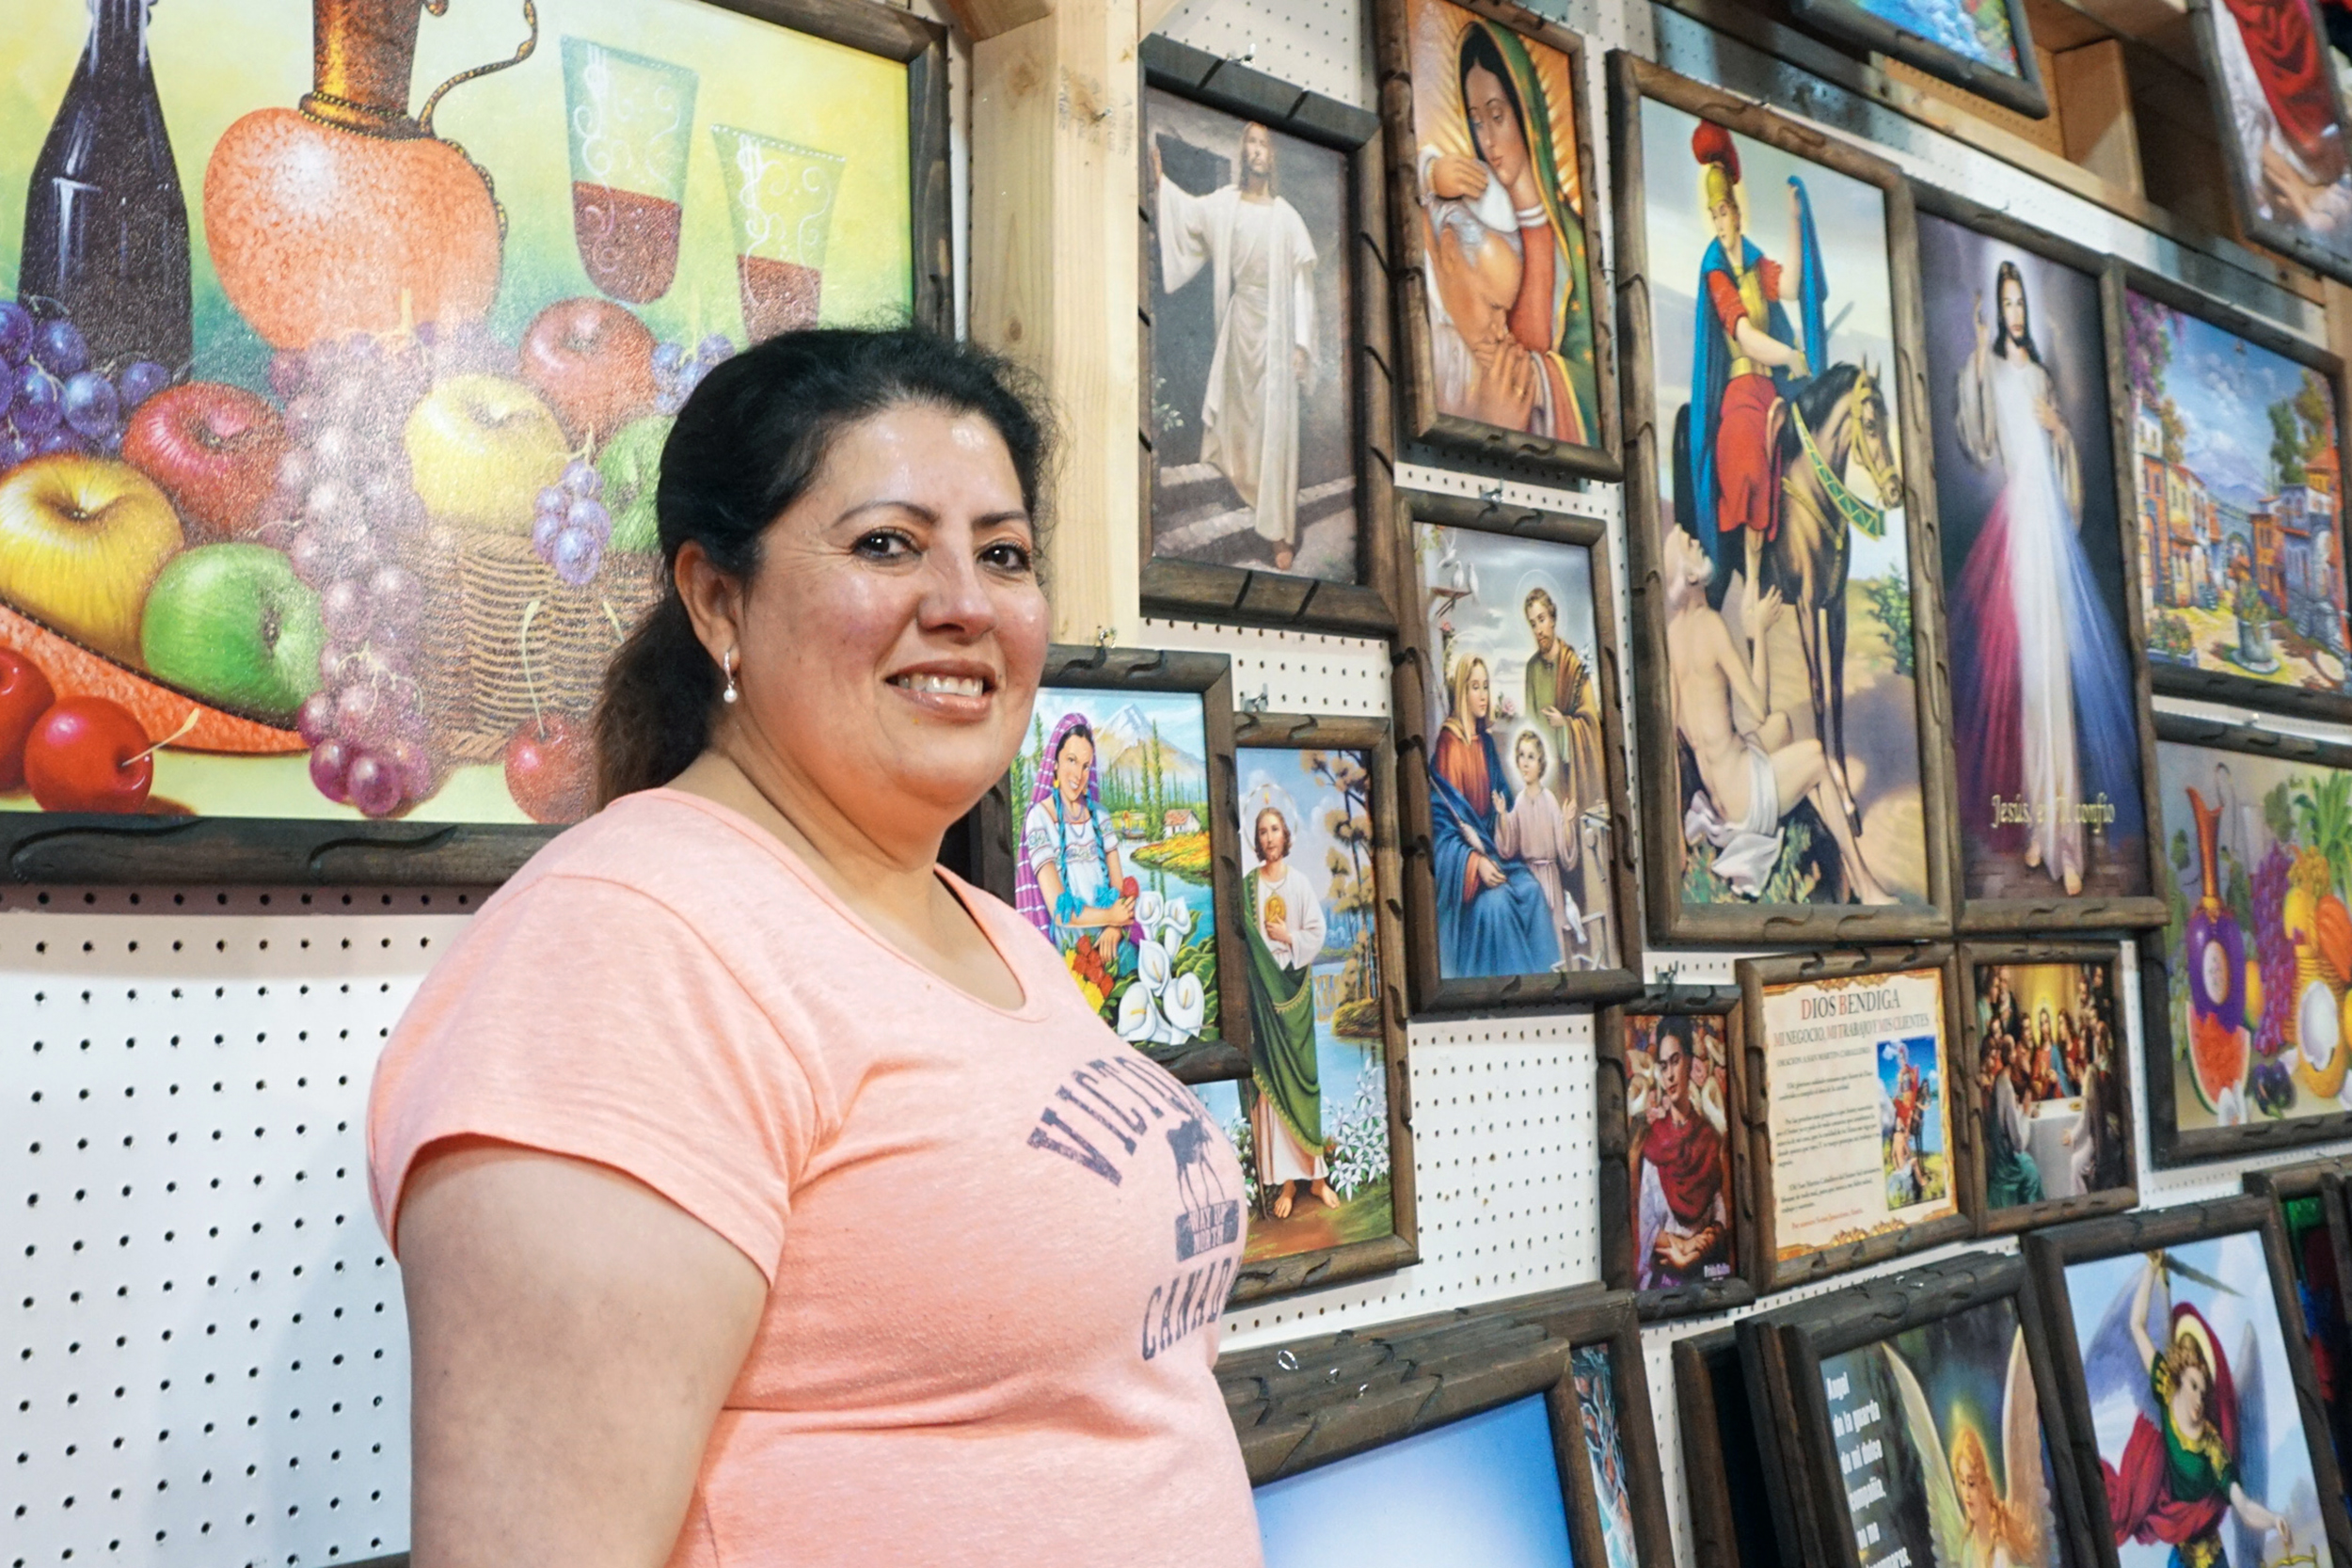 Lopez poses with her framed art work she sells.